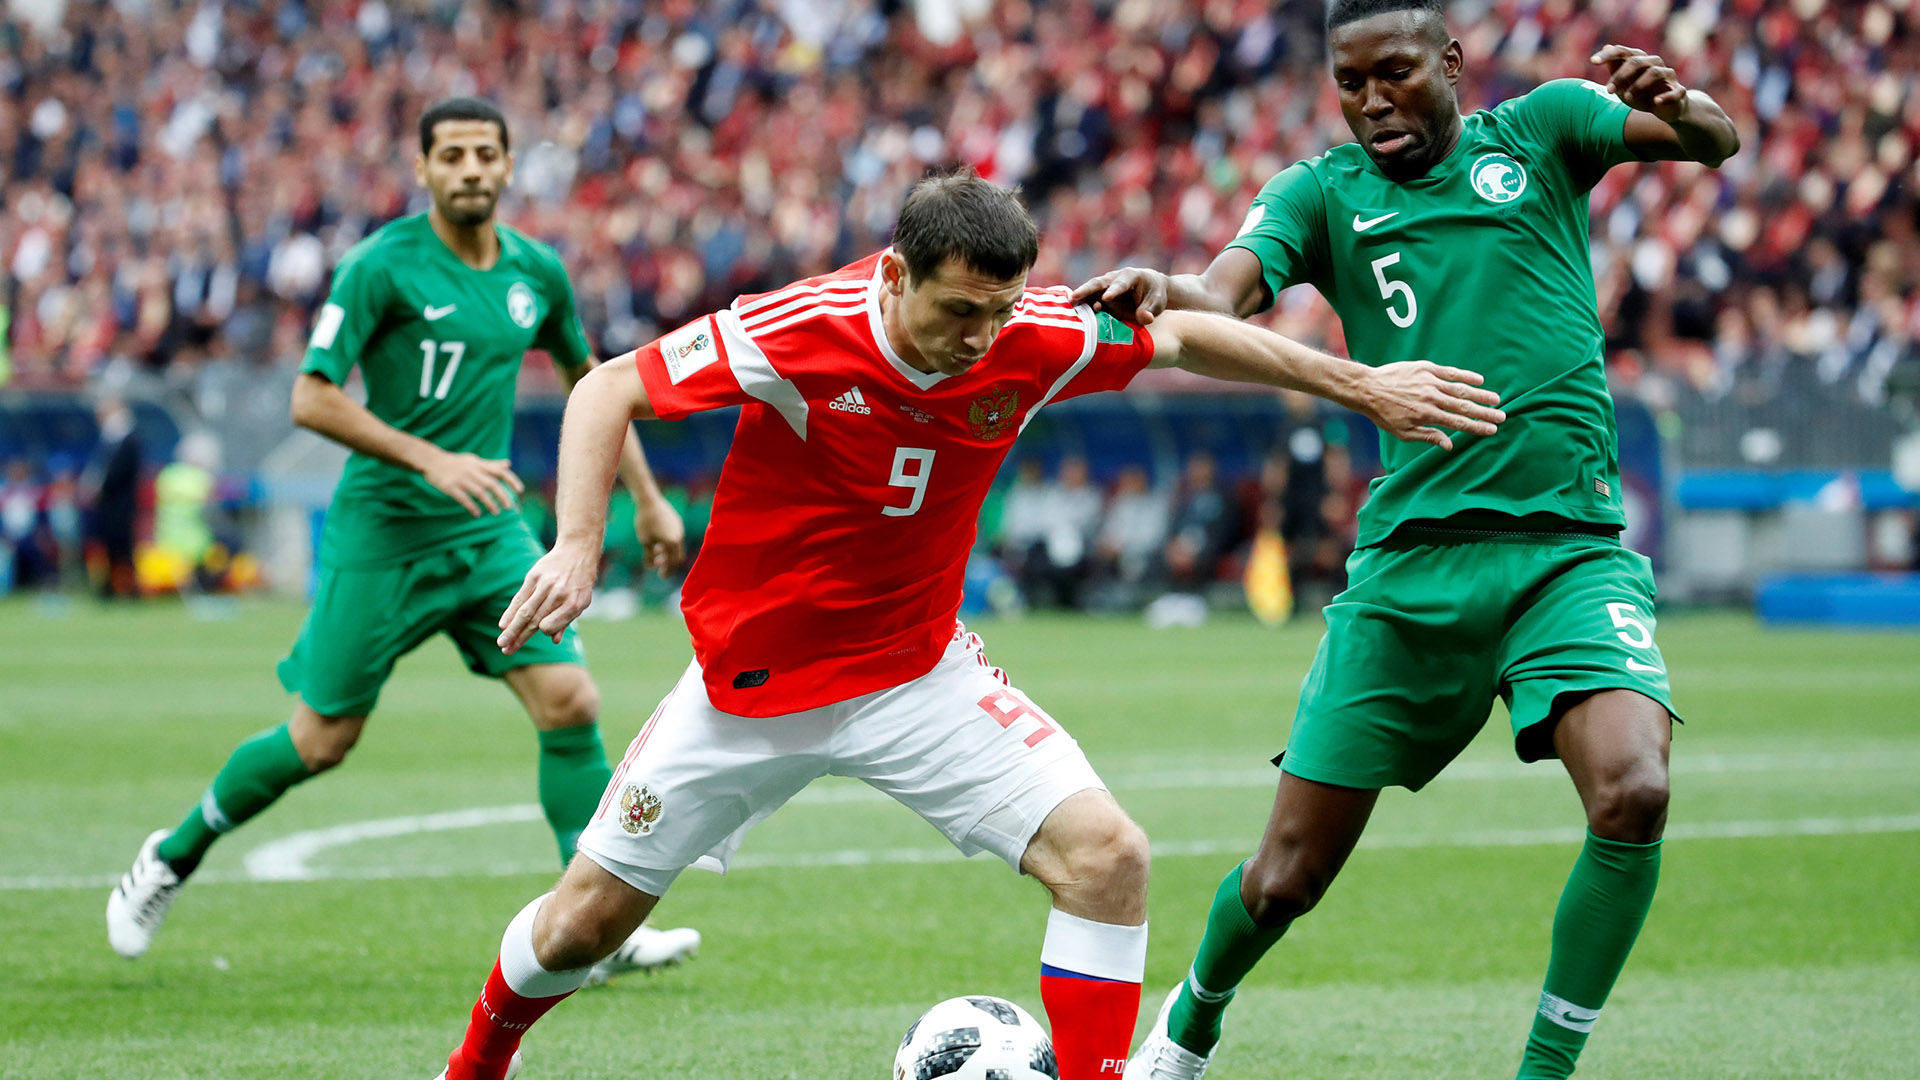 Soccer Football – World Cup – Group A – Russia vs Saudi Arabia – Luzhniki Stadium, Moscow, Russia – June 14, 2018   Russia's Alan Dzagoev in action with Saudi Arabia's Omar Hawsawi    REUTERS/Christian Hartmann